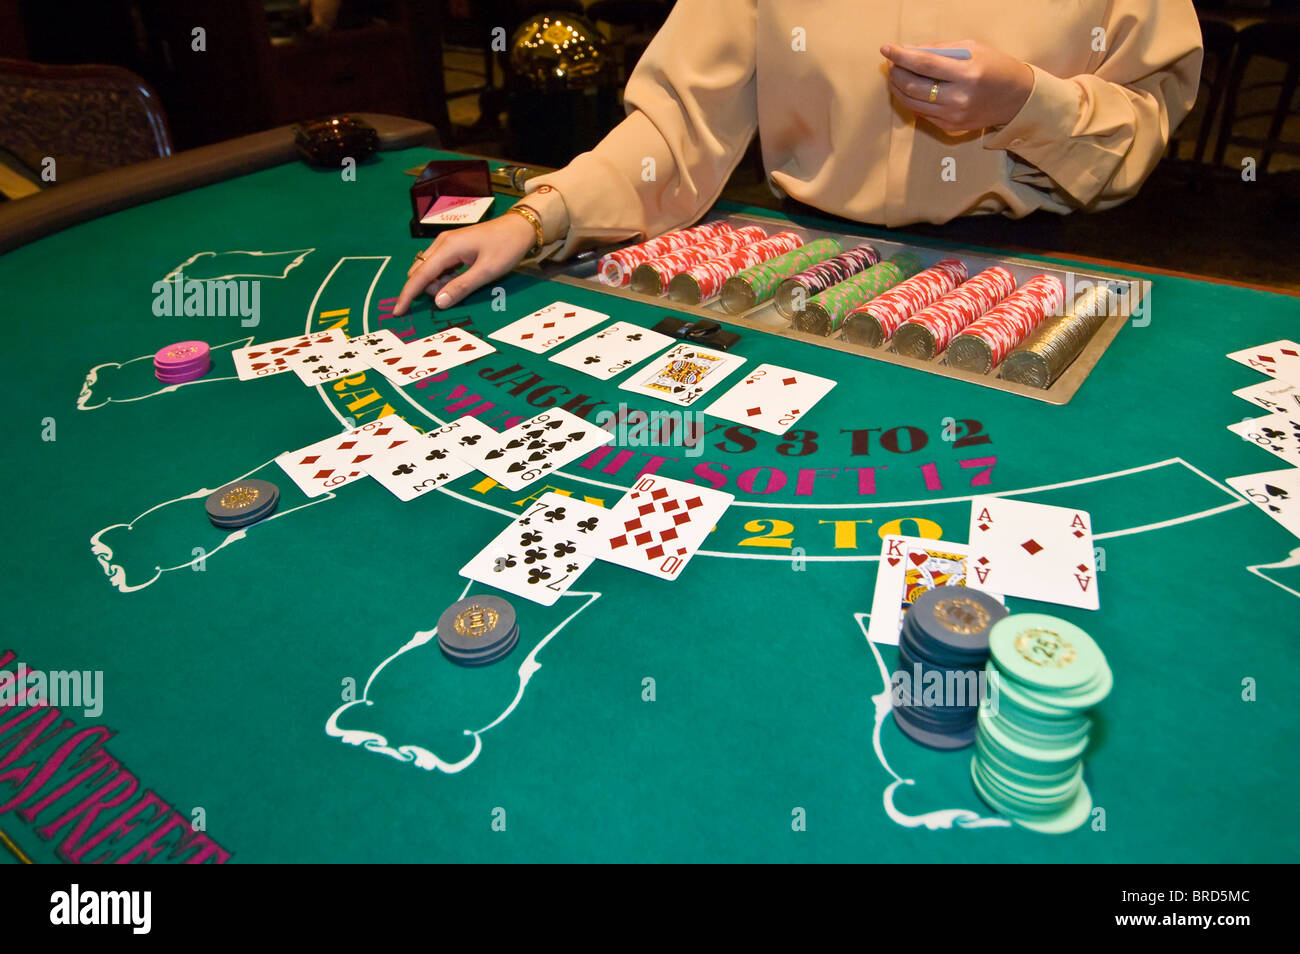 las vegas casino blackjack rules